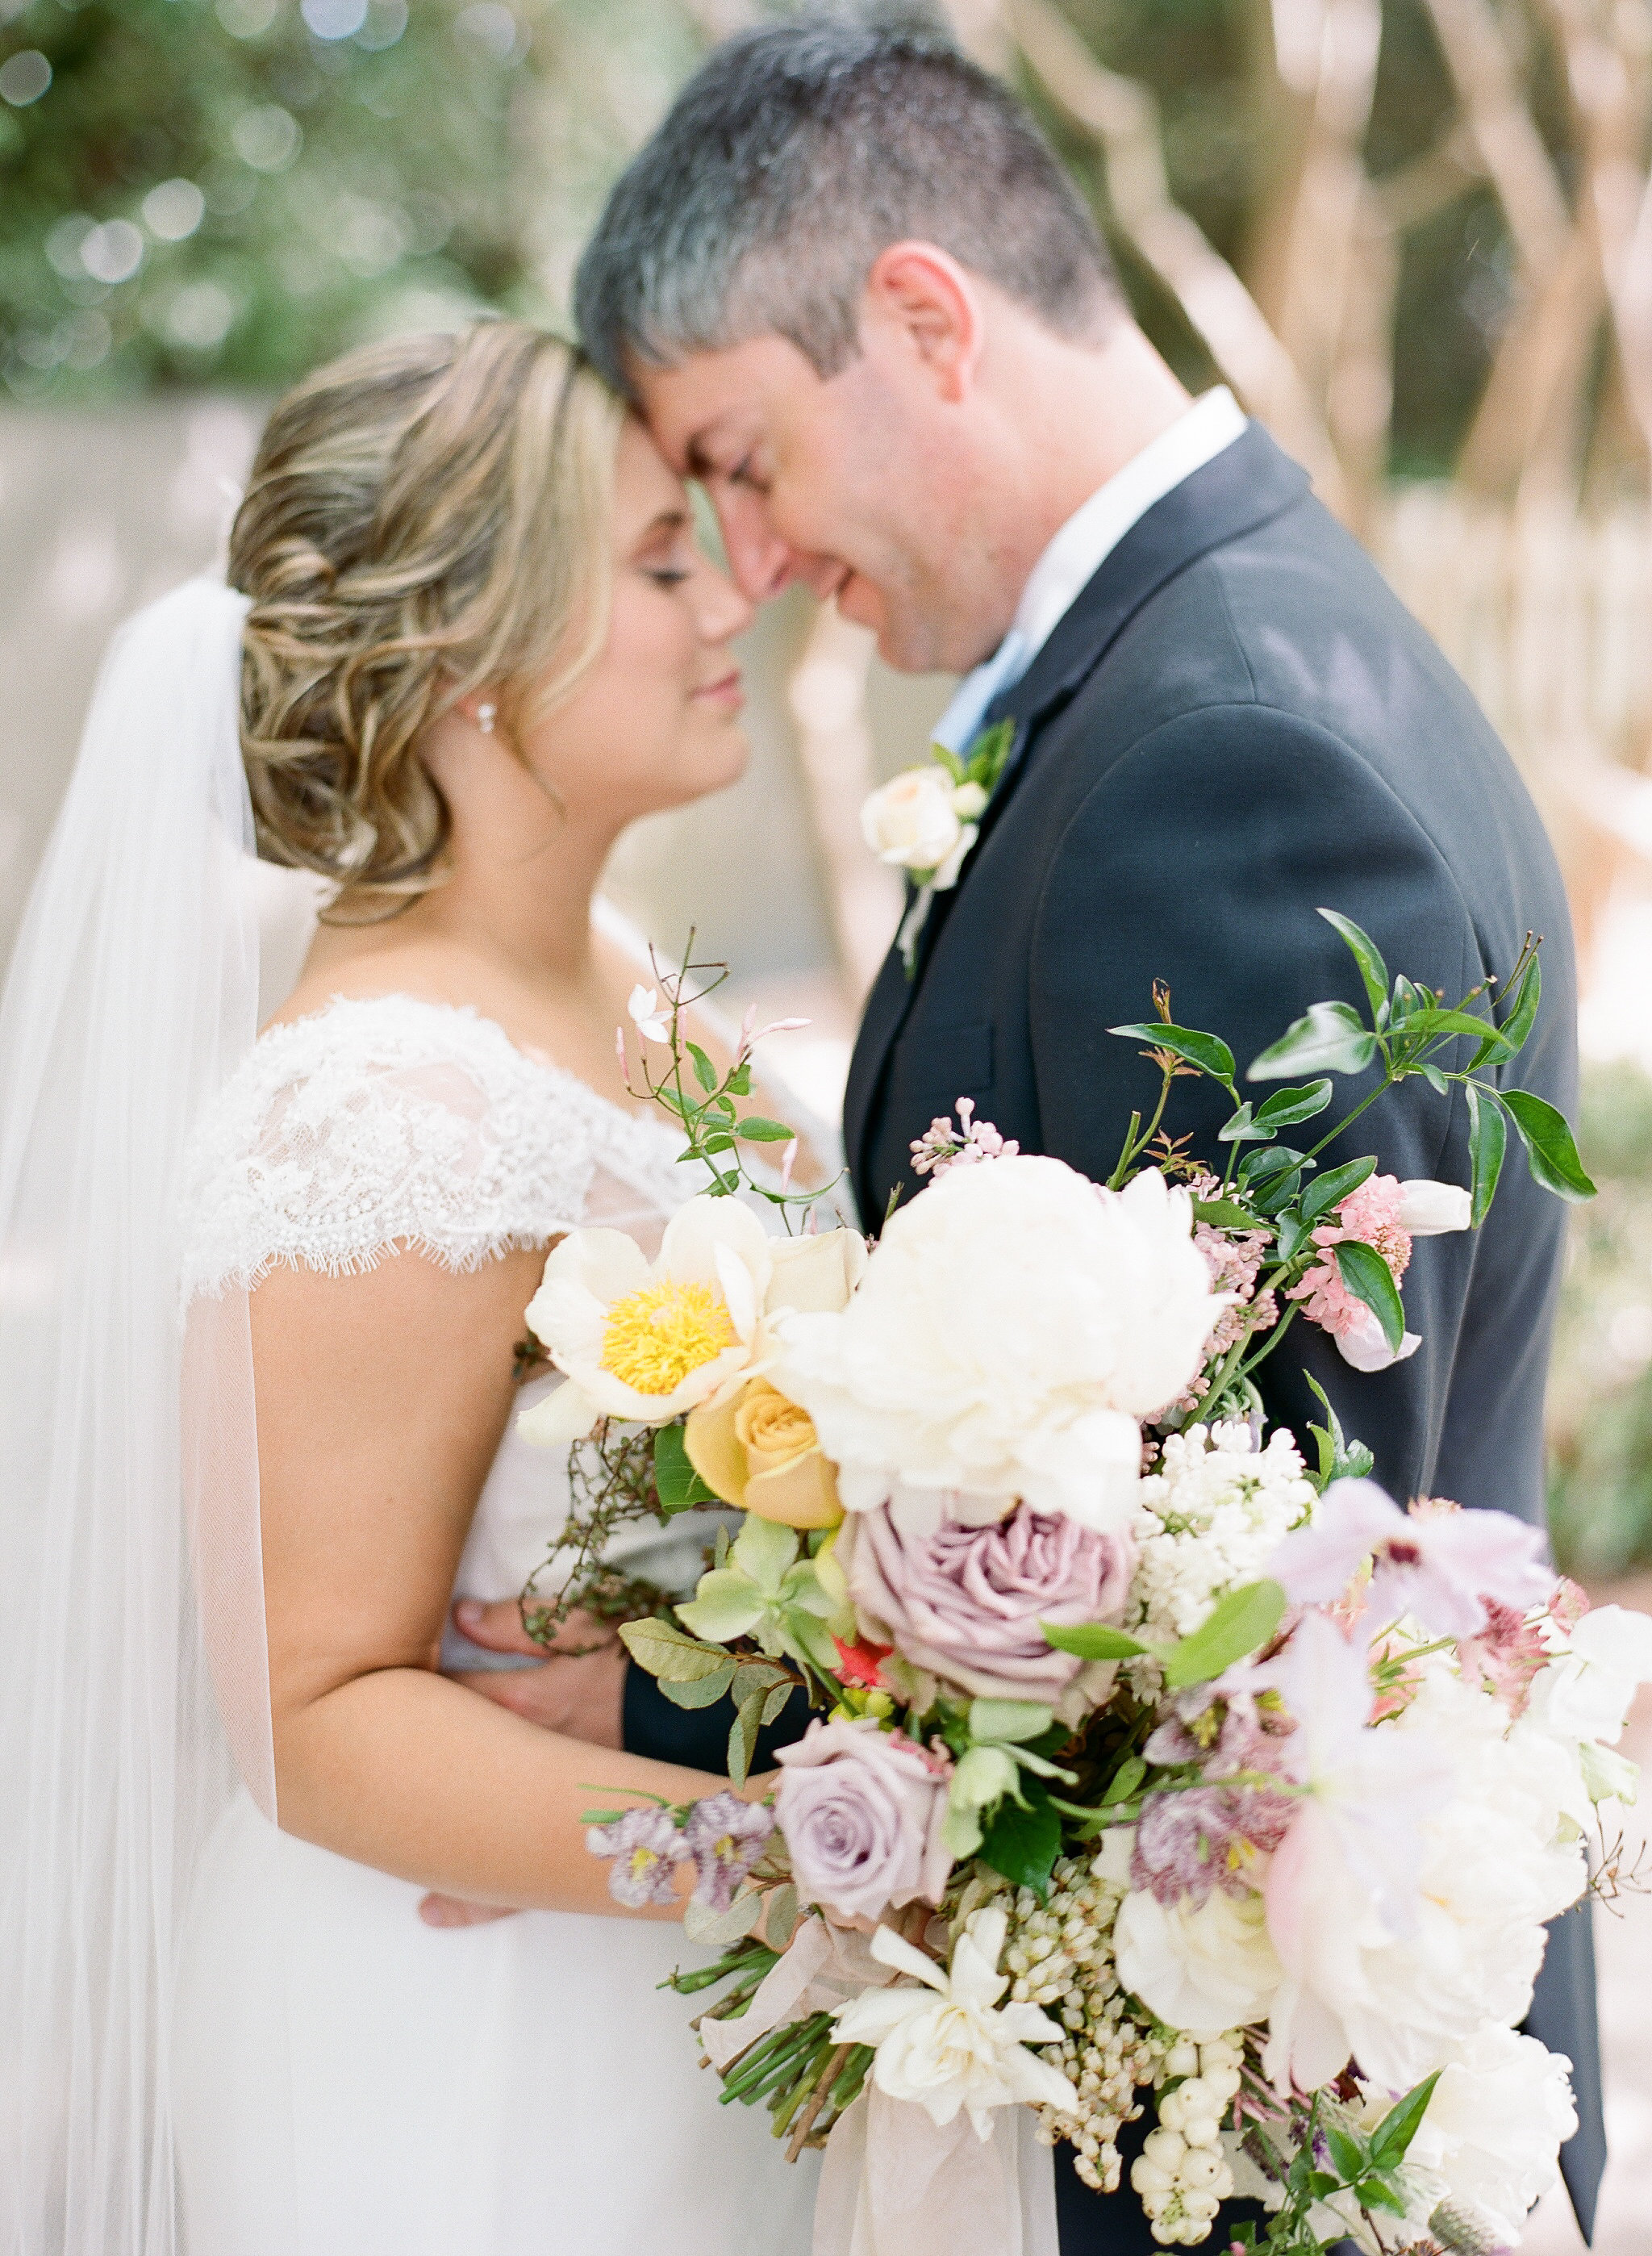 Emily + Kevin - Real Georgia Wedding | A Charming Southern Garden AffairPublished on Southern Weddings